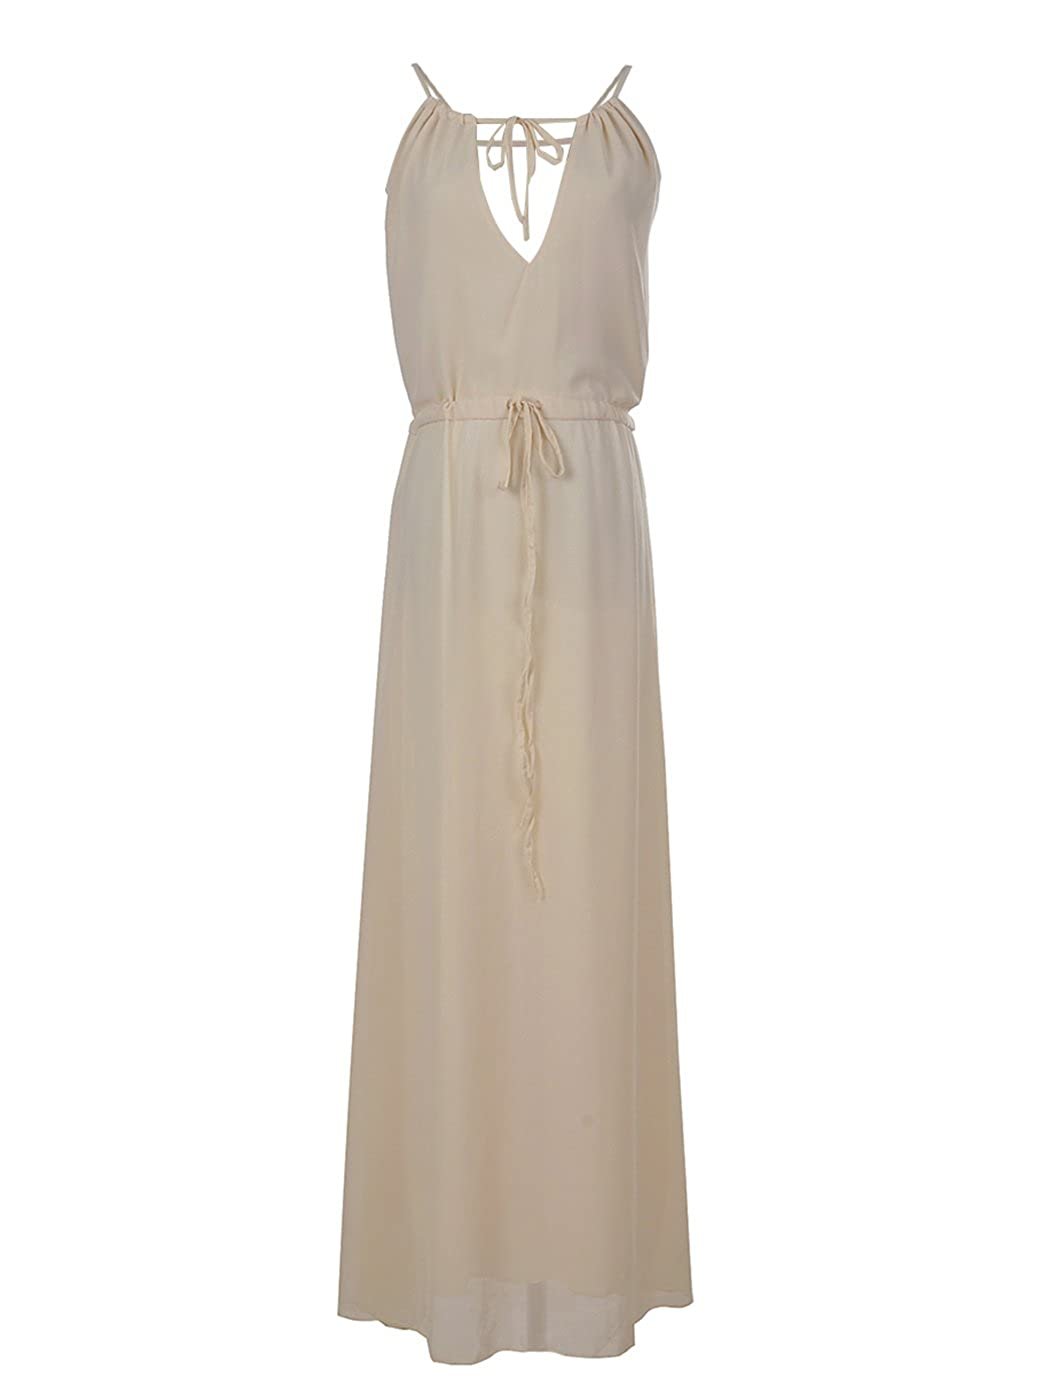 722744ac18 Top 10 wholesale Ivory Halter Maxi Dress - Chinabrands.com